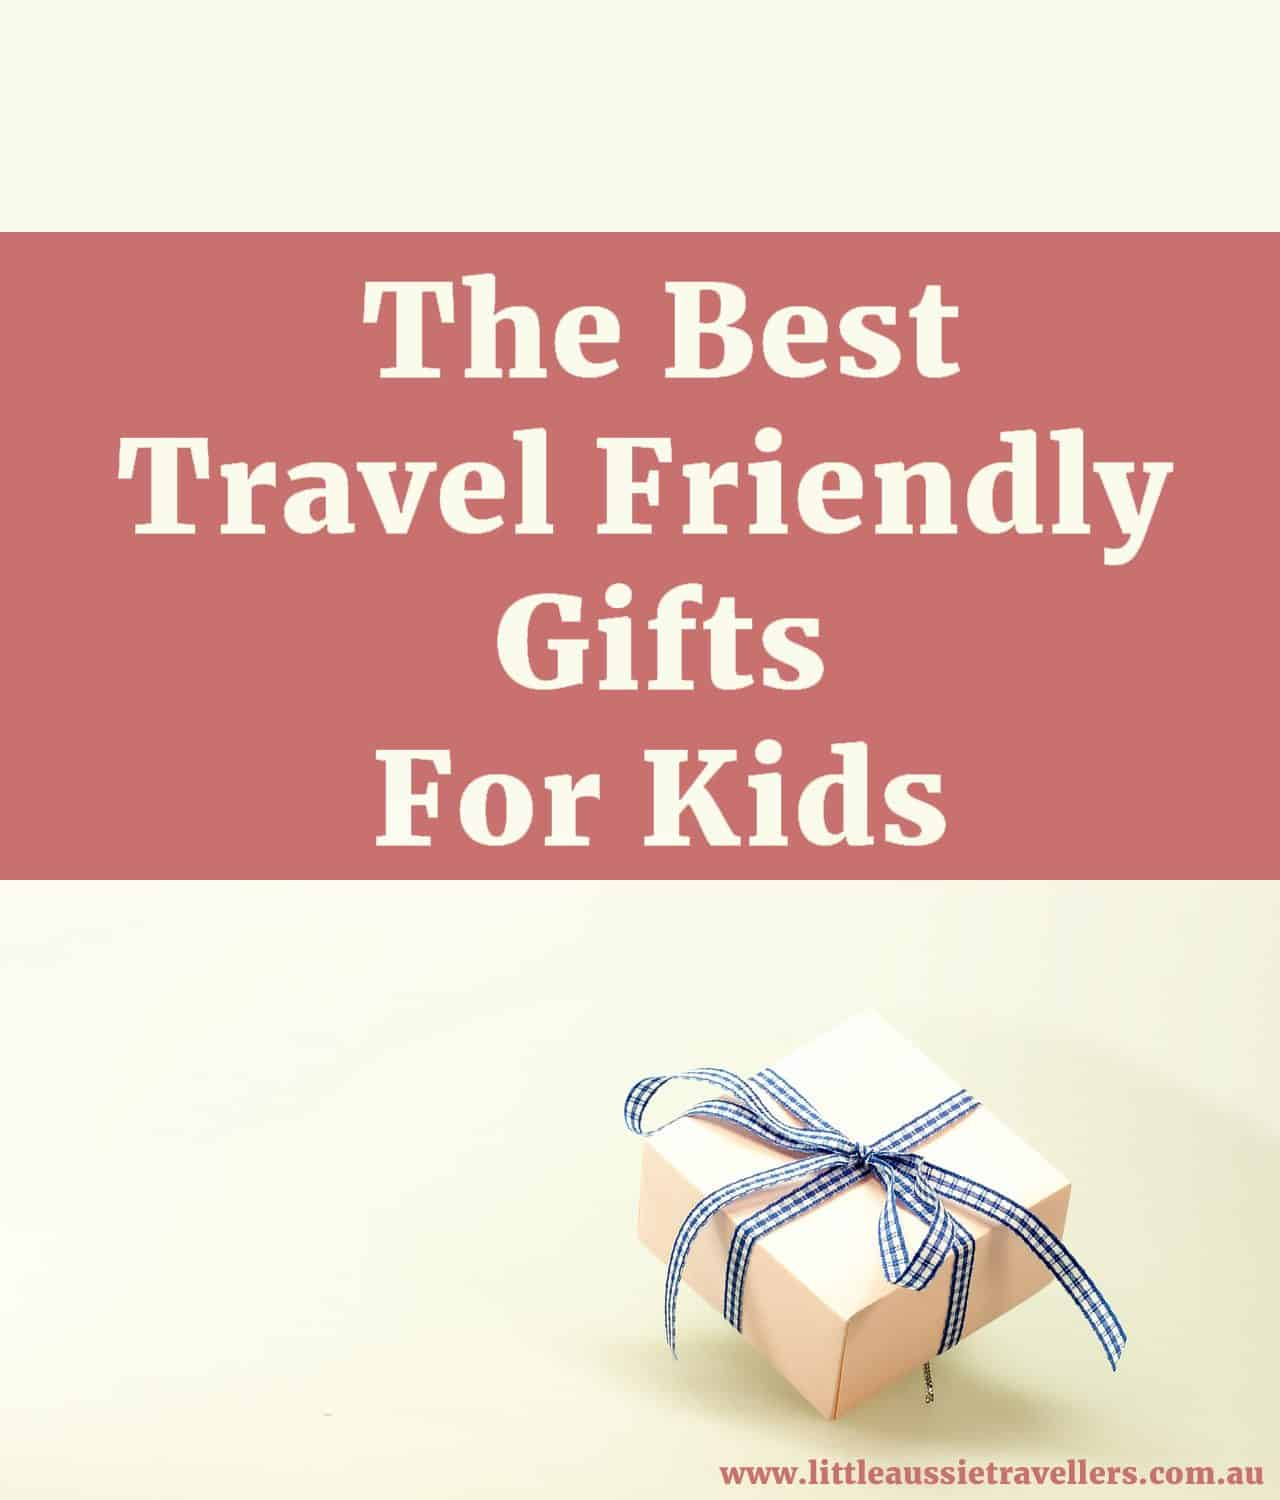 The Best Travel Gifts For Kids & Teens